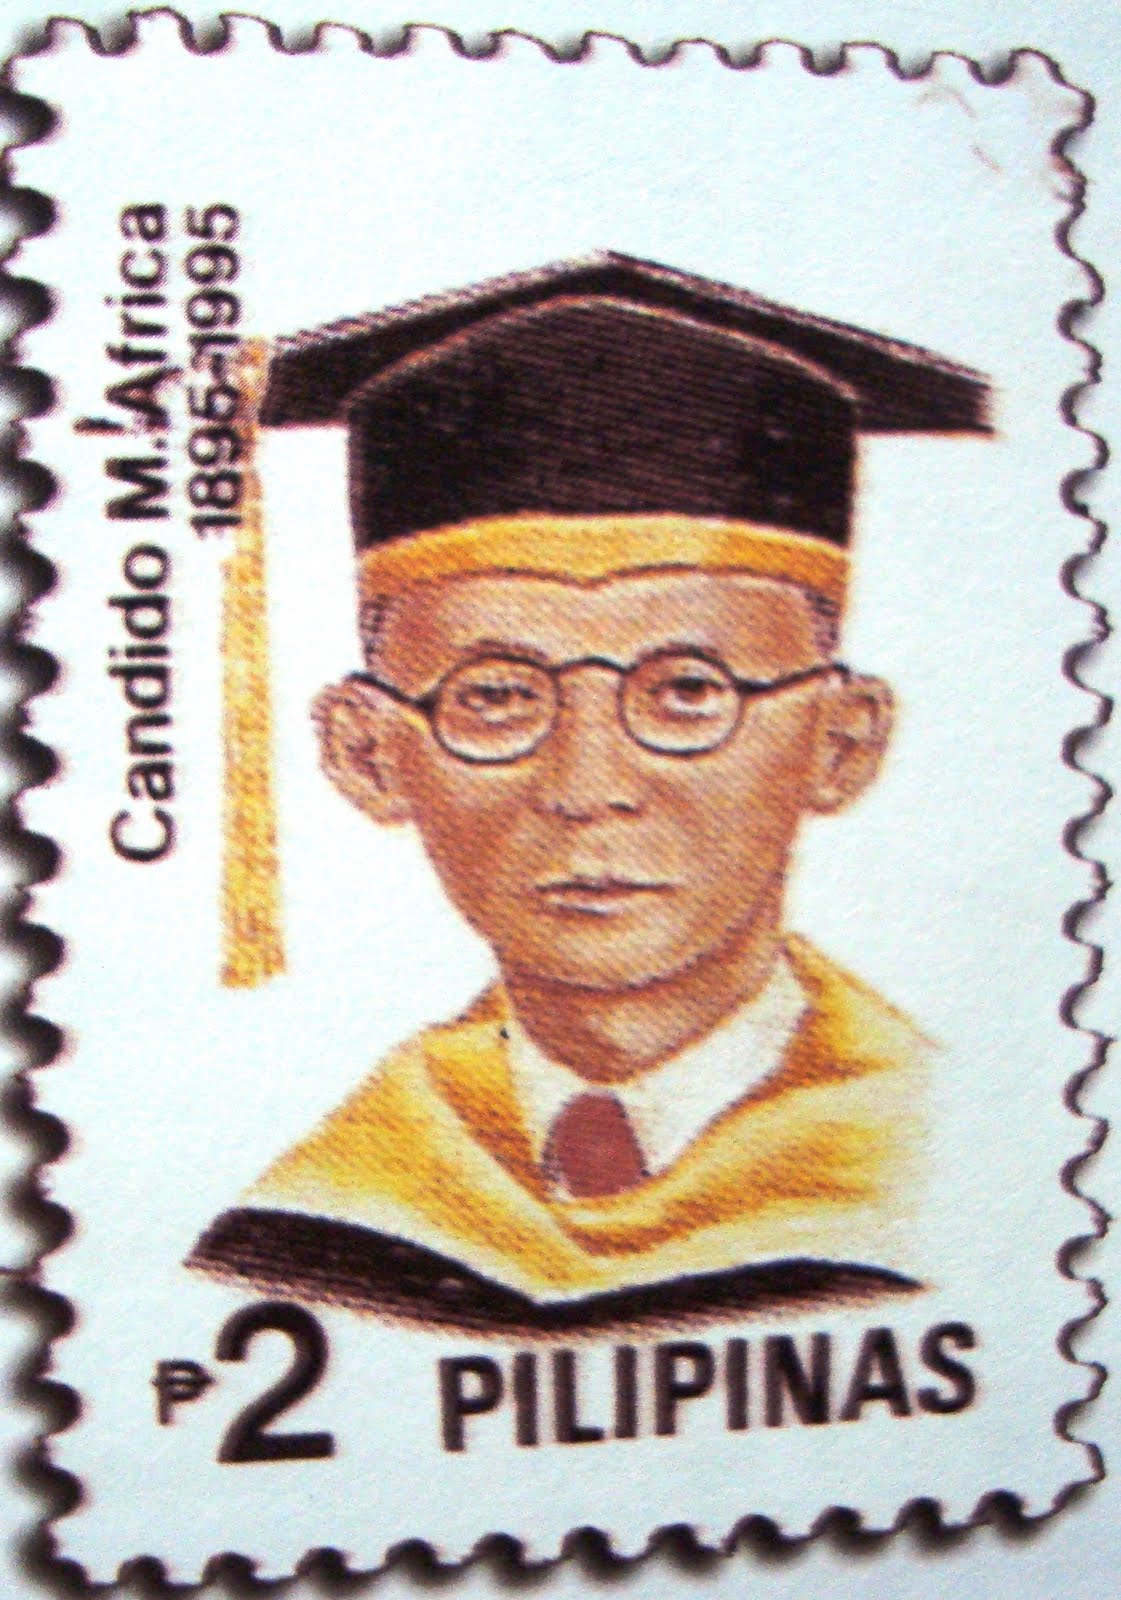 Famous Filipino Scientist and Their Contributions